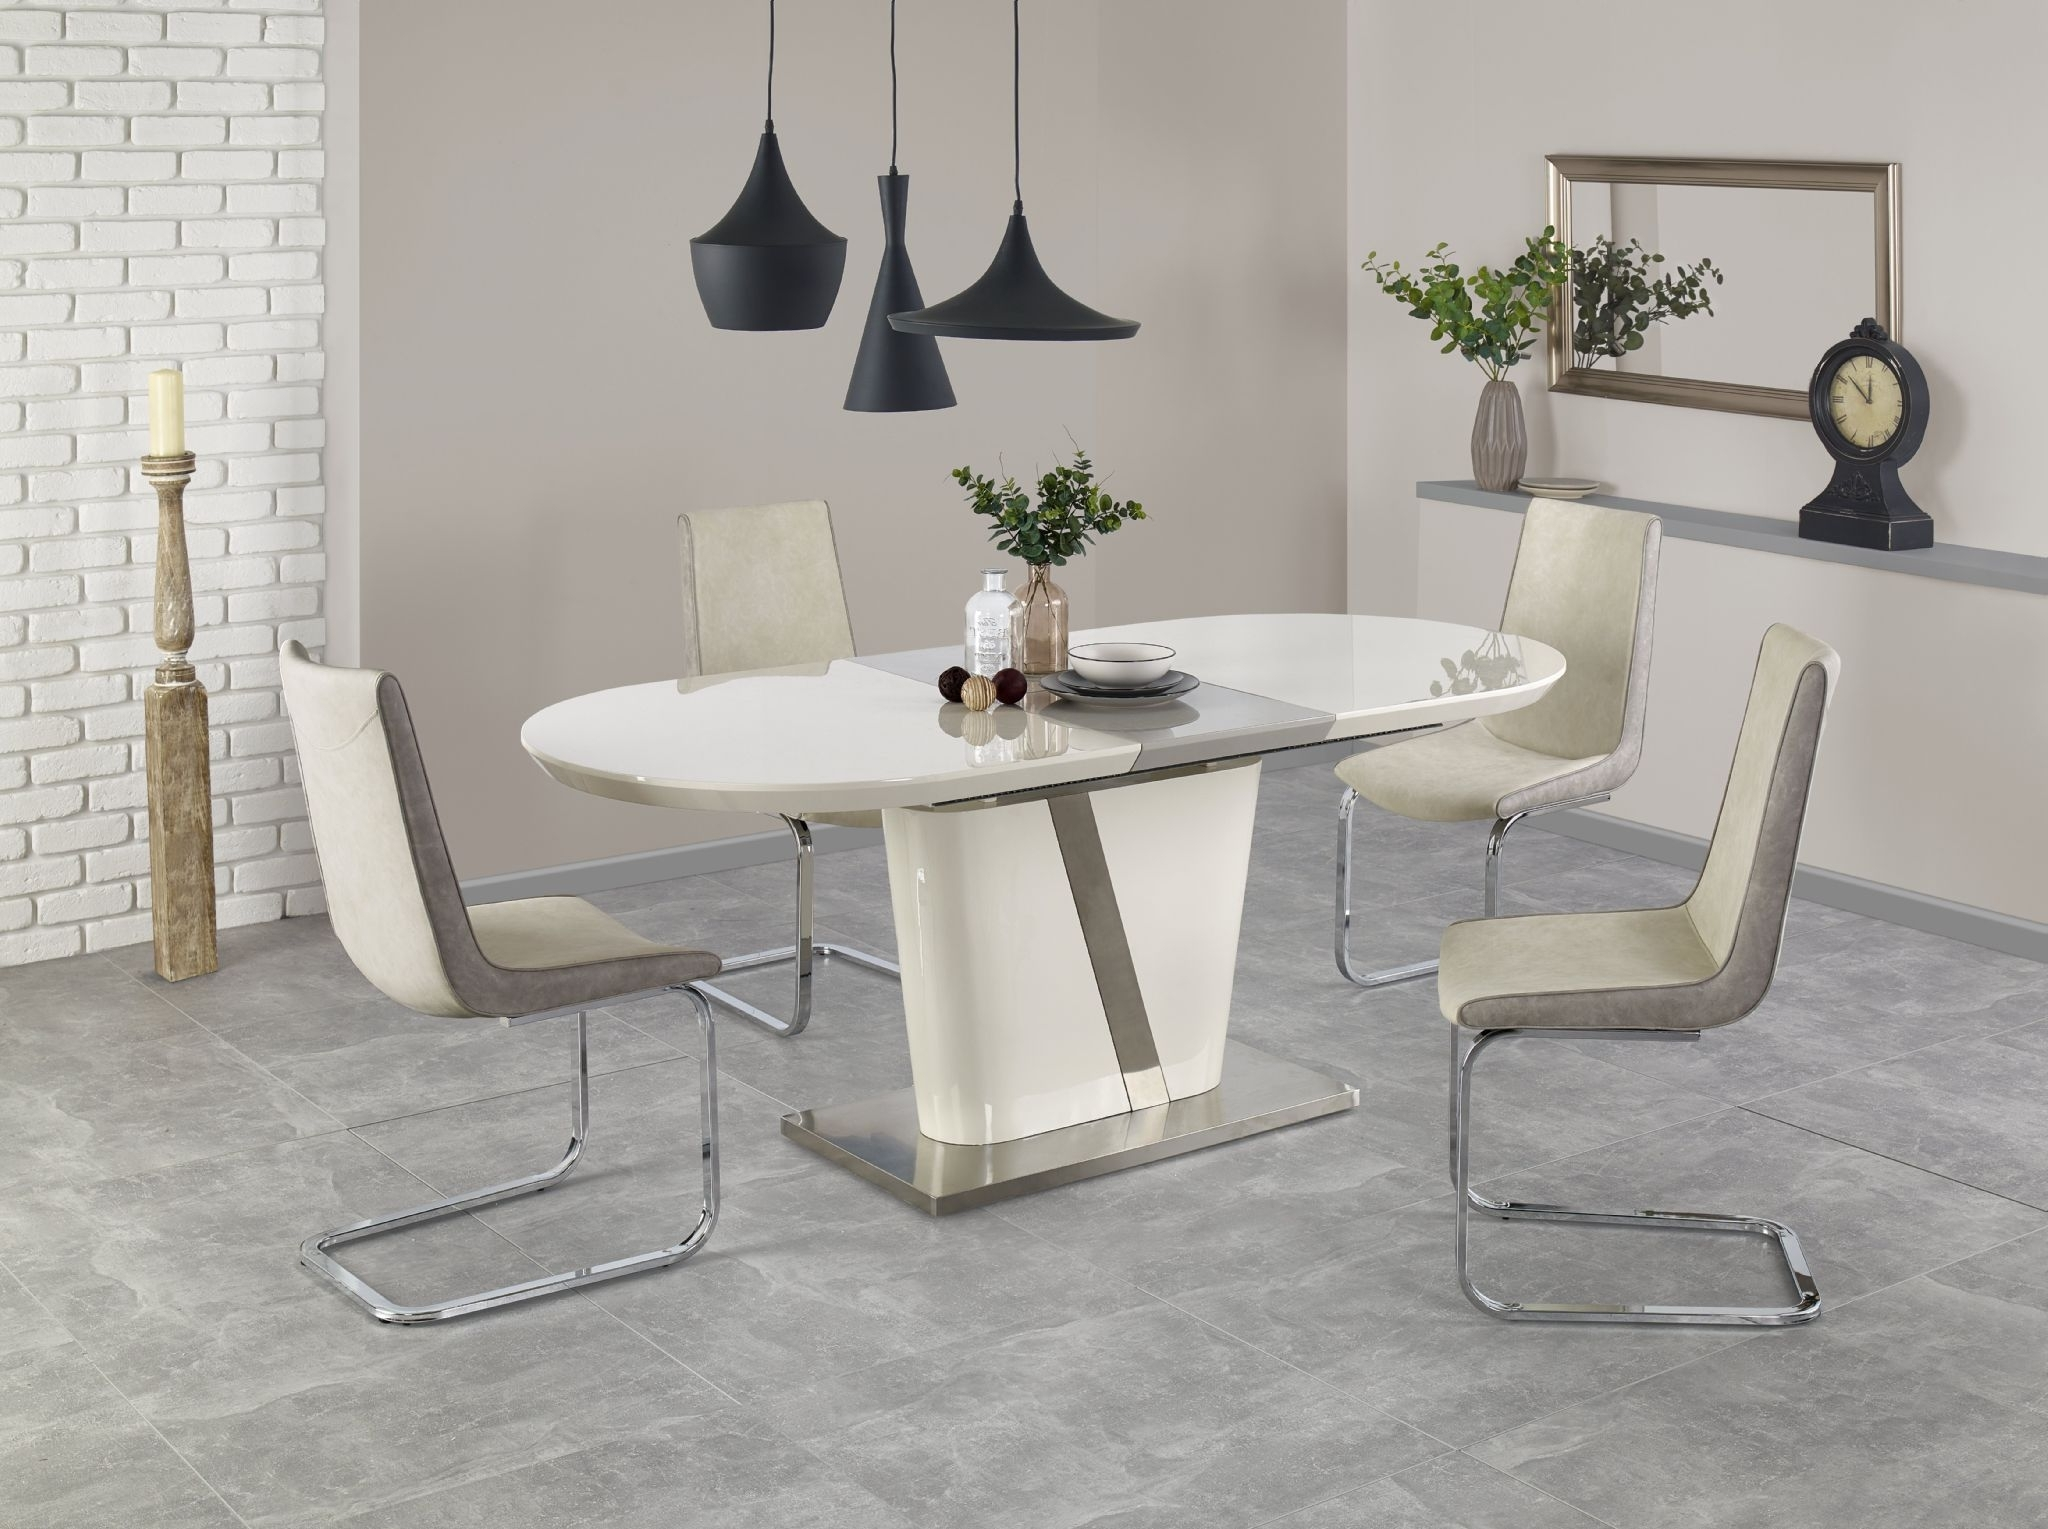 High Gloss Cream Dining Tables with Newest Retro Dining Table Extendable And Chairs Corner Cream High Gloss